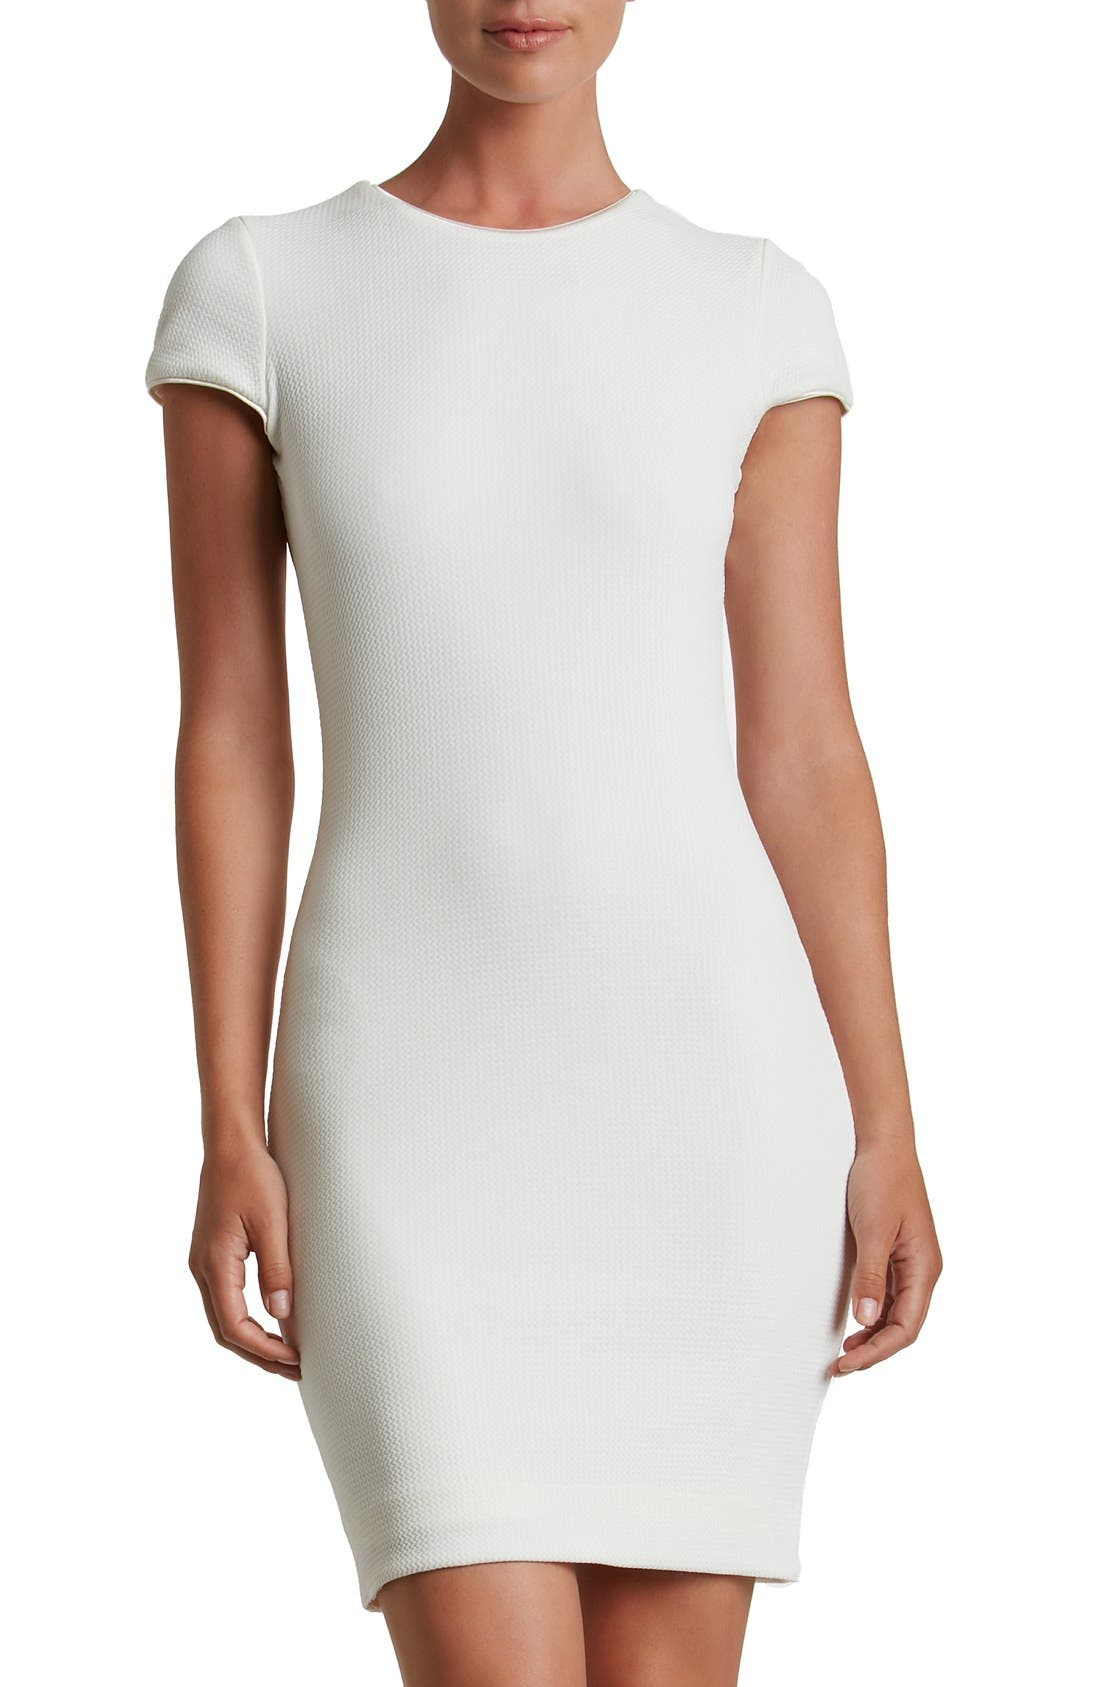 DRESS THE POPULATION 'Josie' Textured Knit Body-Con Dress